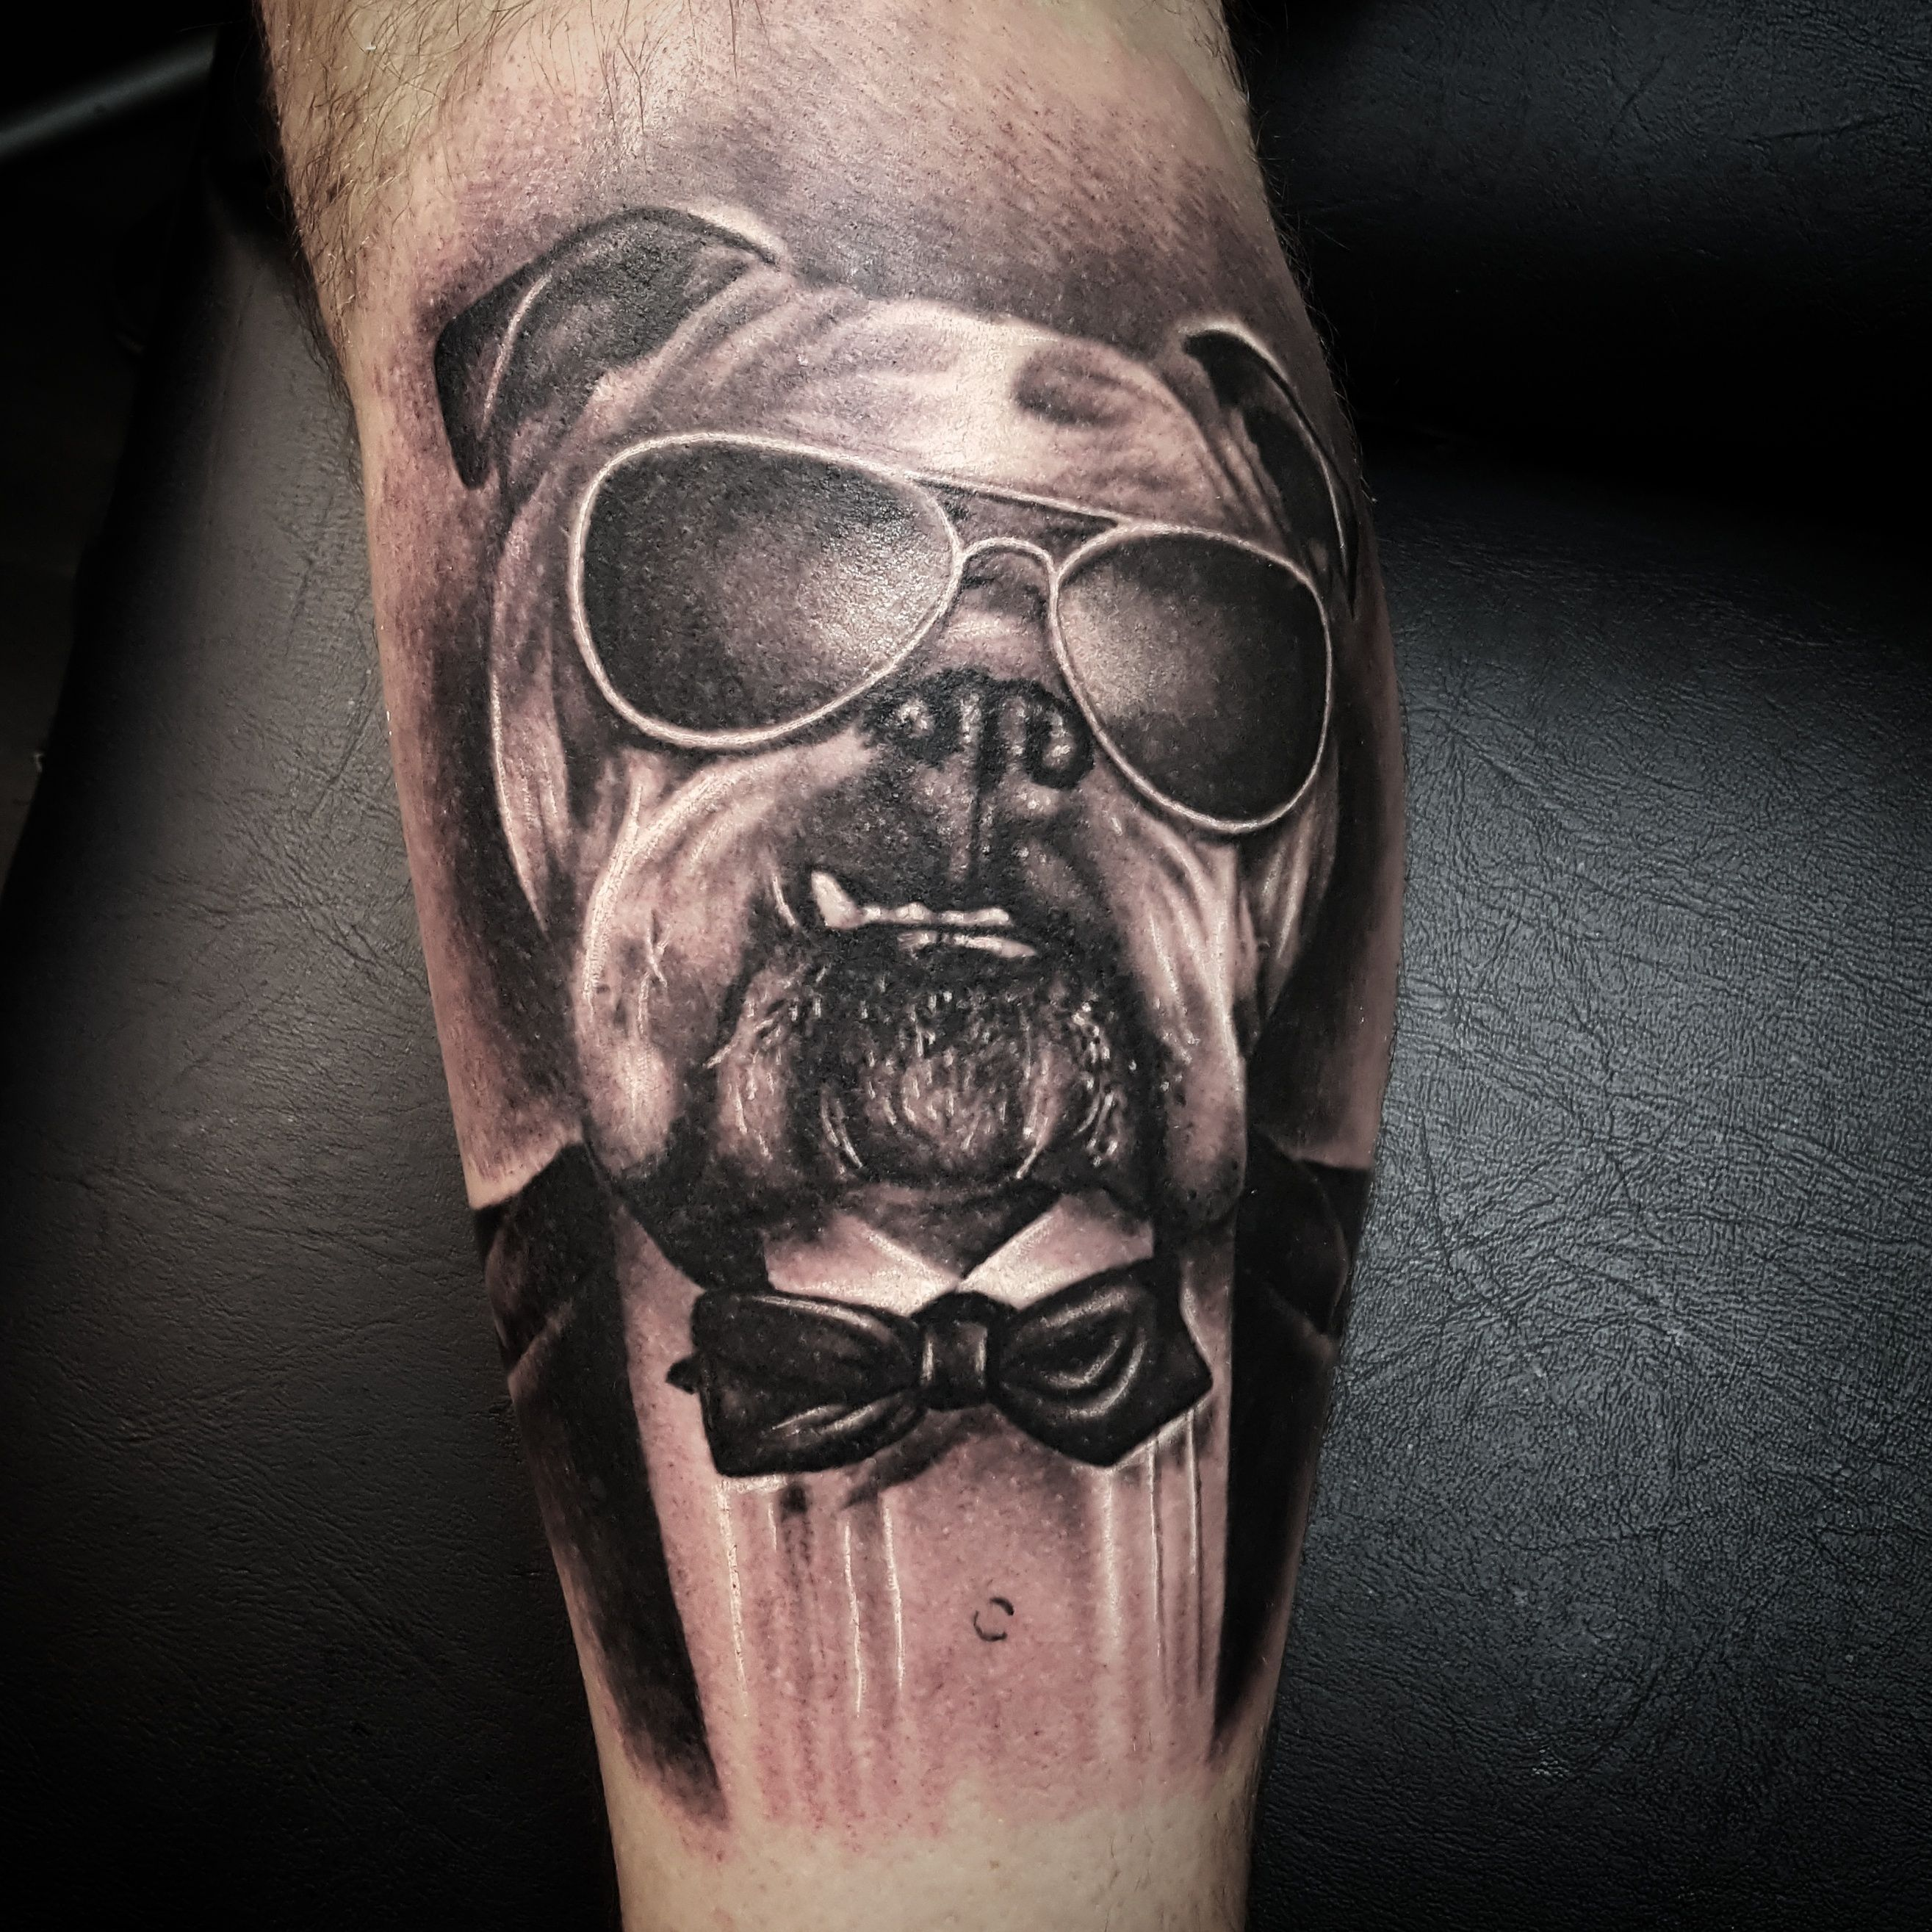 bulldog tattoo by thomas sidney birchall soular tattoo christchurch nz soular tattoo. Black Bedroom Furniture Sets. Home Design Ideas